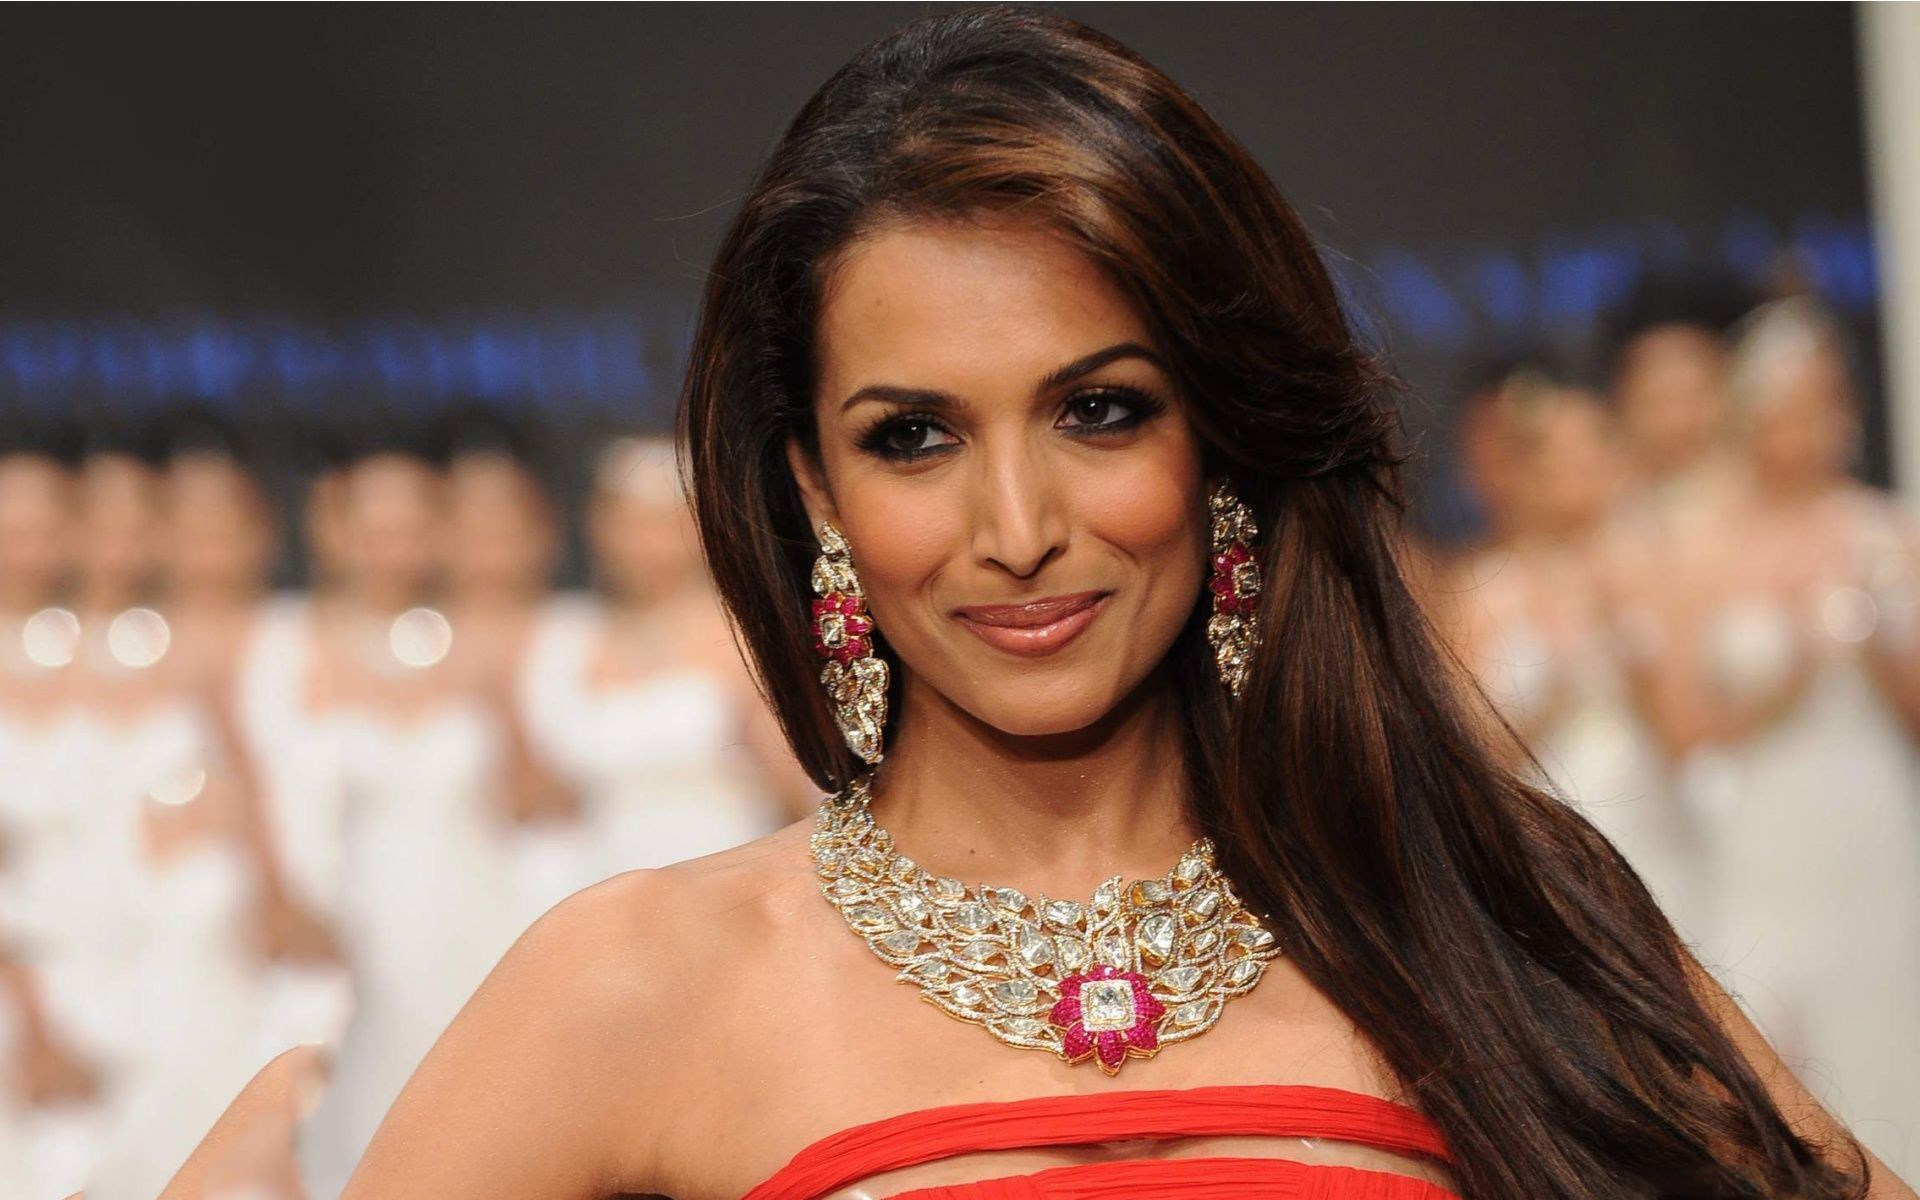 Bollywood celebrity interview videos with famous people